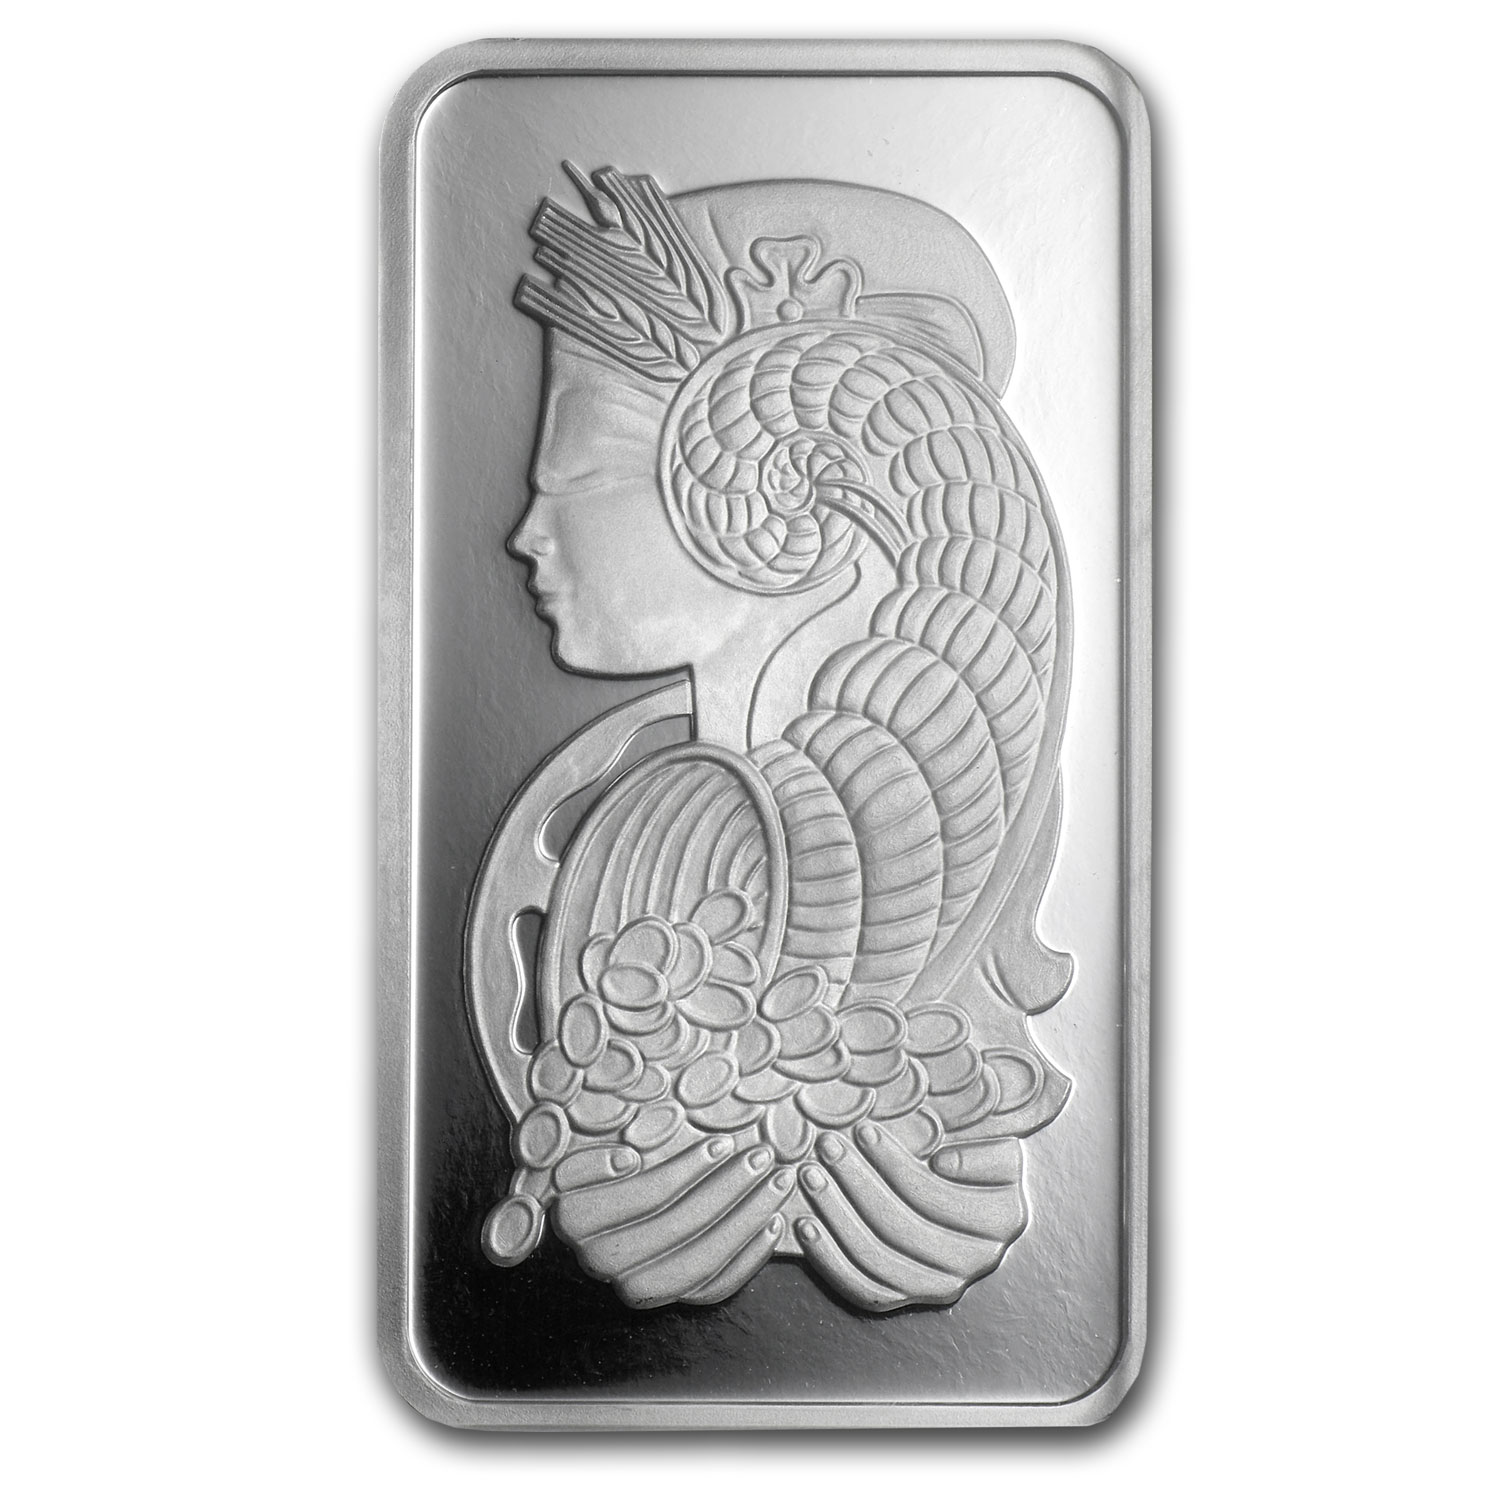 50 gram Silver Bars - Secondary Market